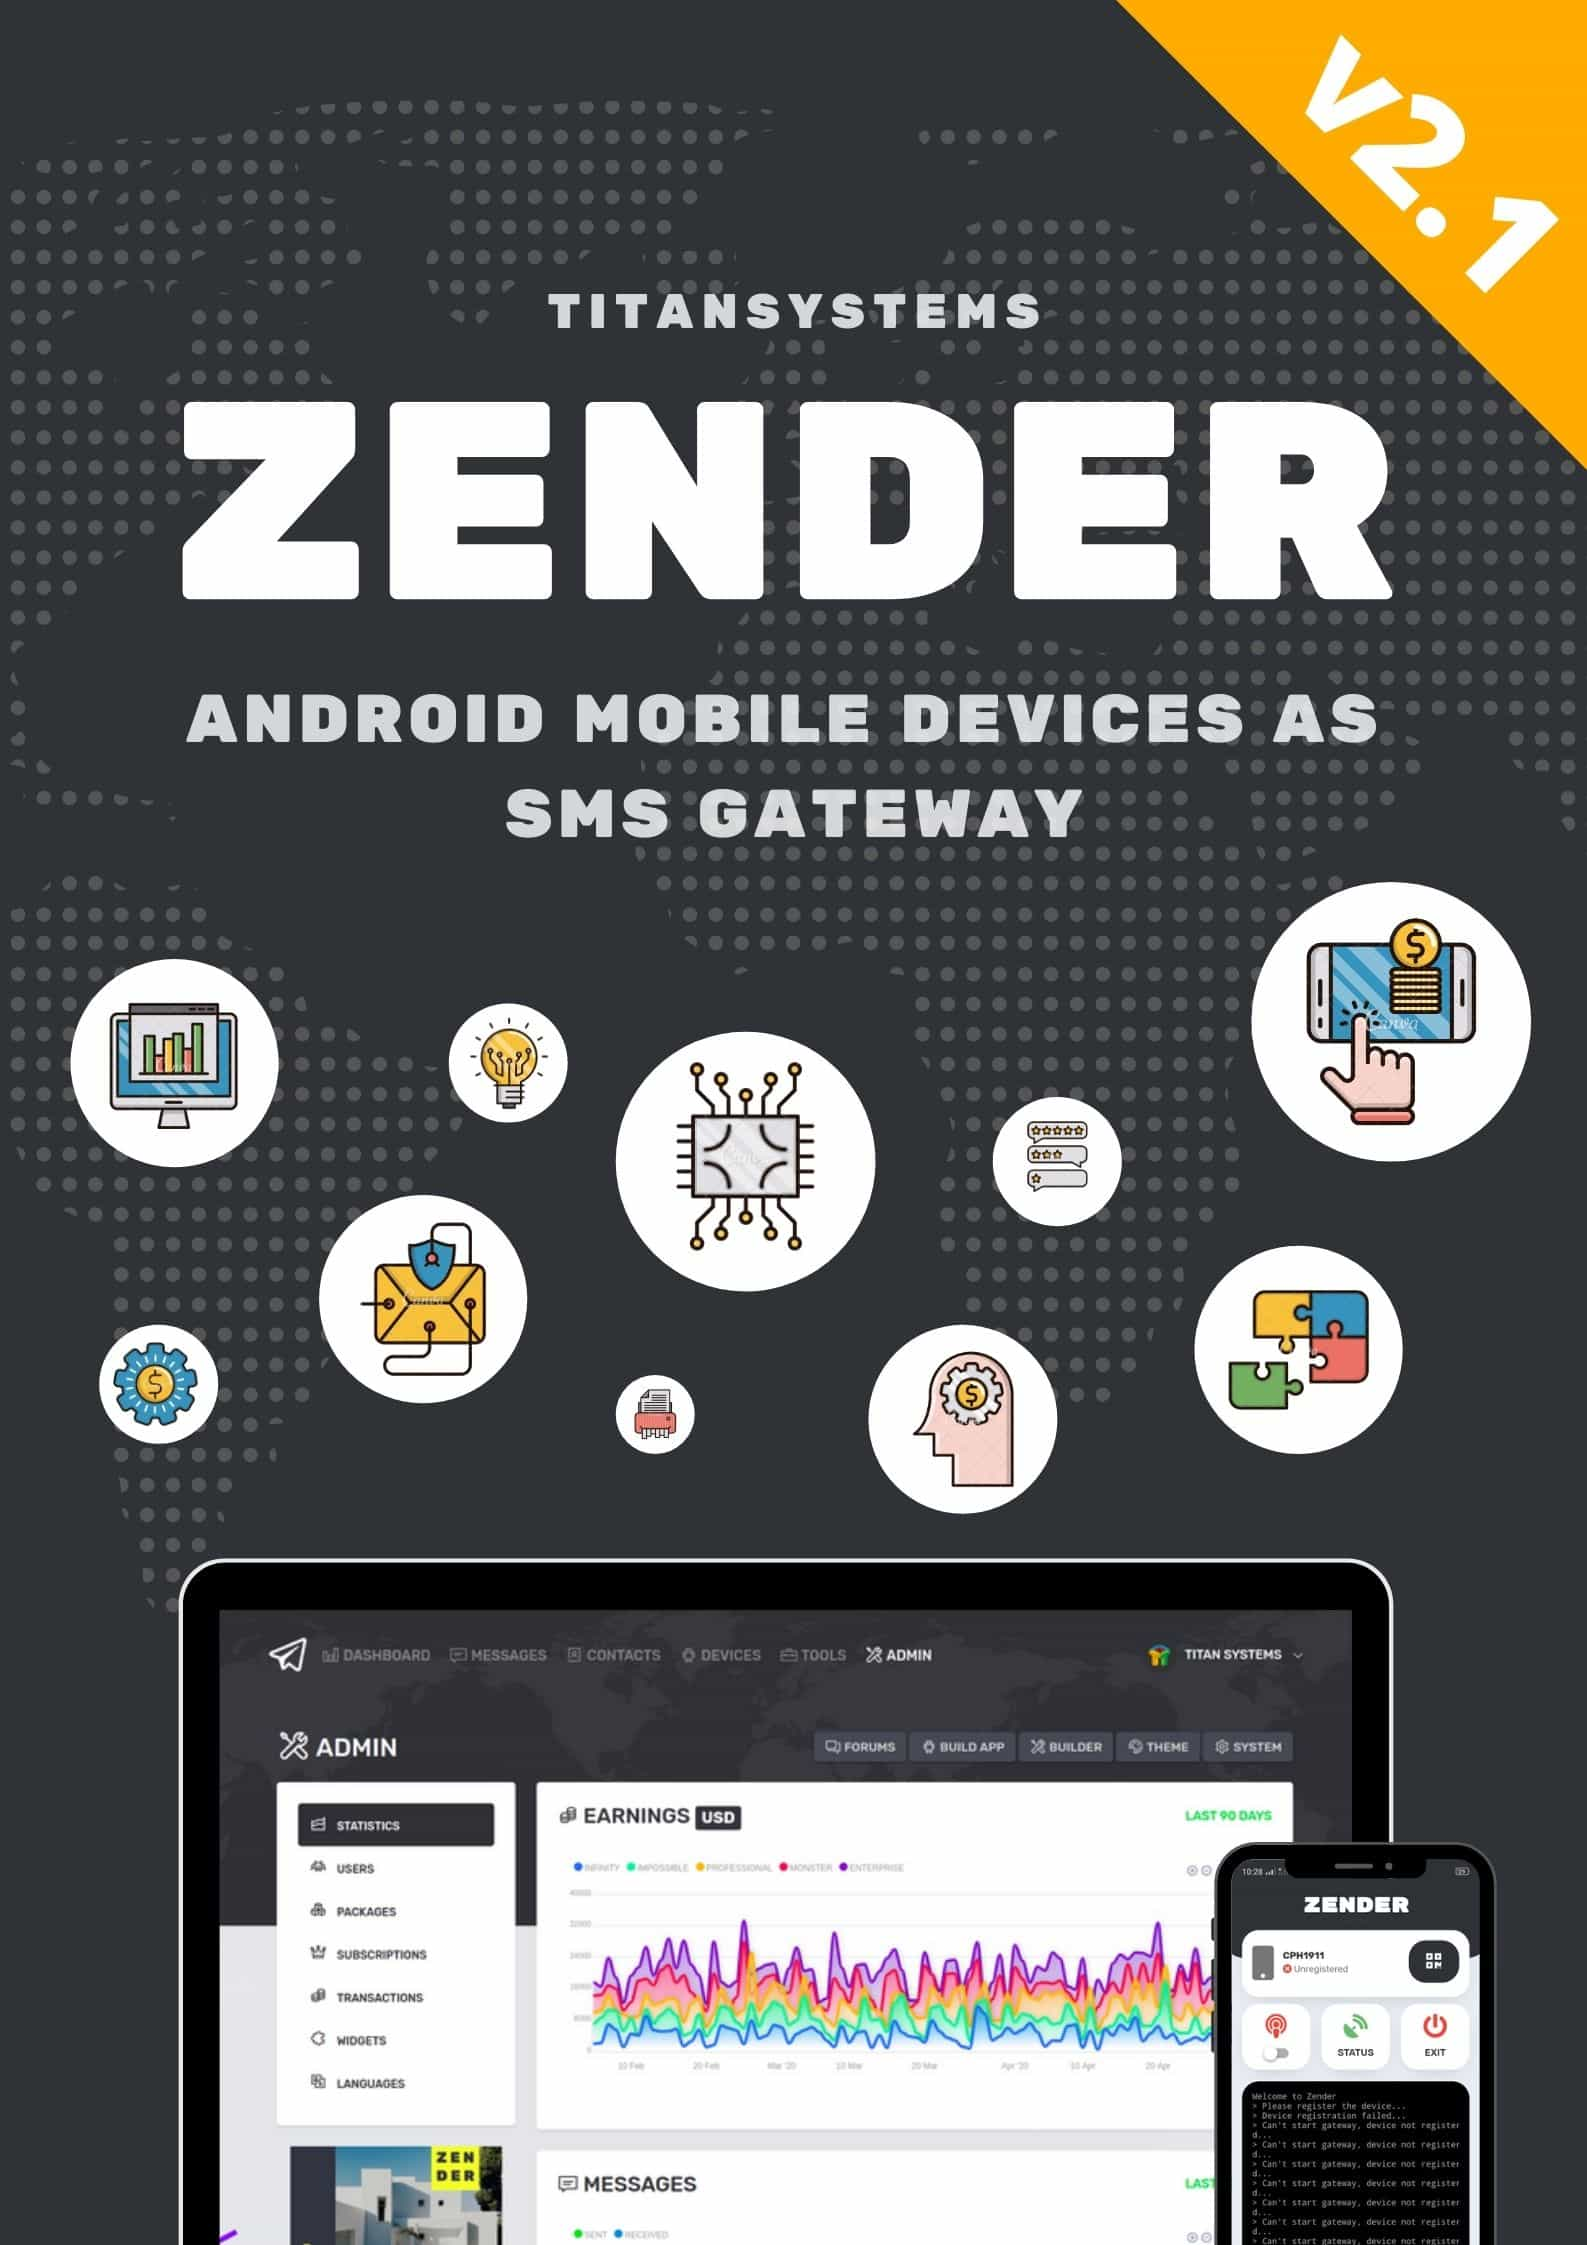 Zender - Android Mobile Devices as SMS Gateway (SaaS Platform) - 4